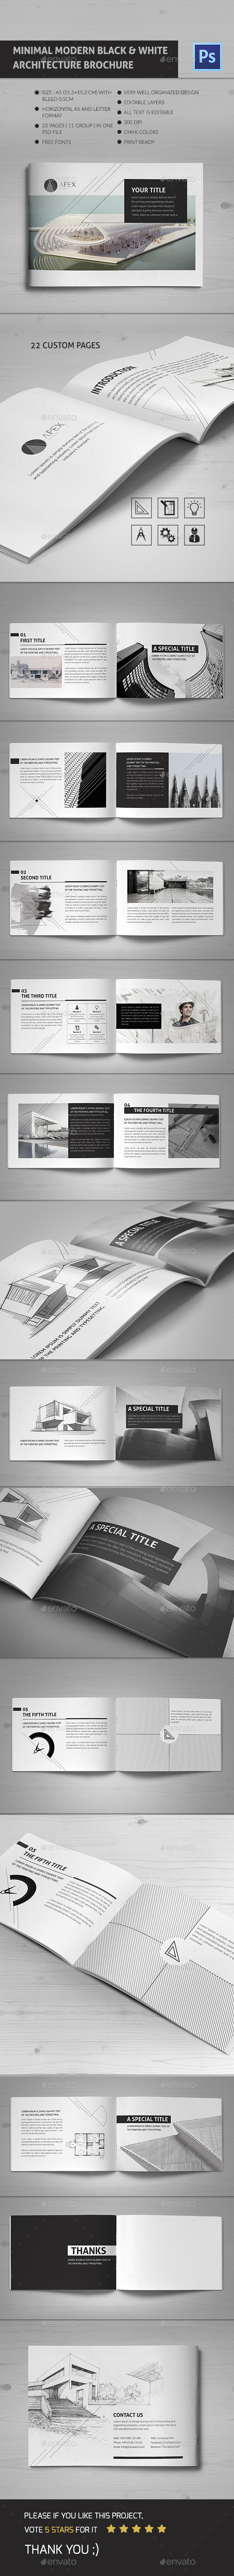 Minimal Modern Black & White Architecture Brochure - Brochures Print Templates